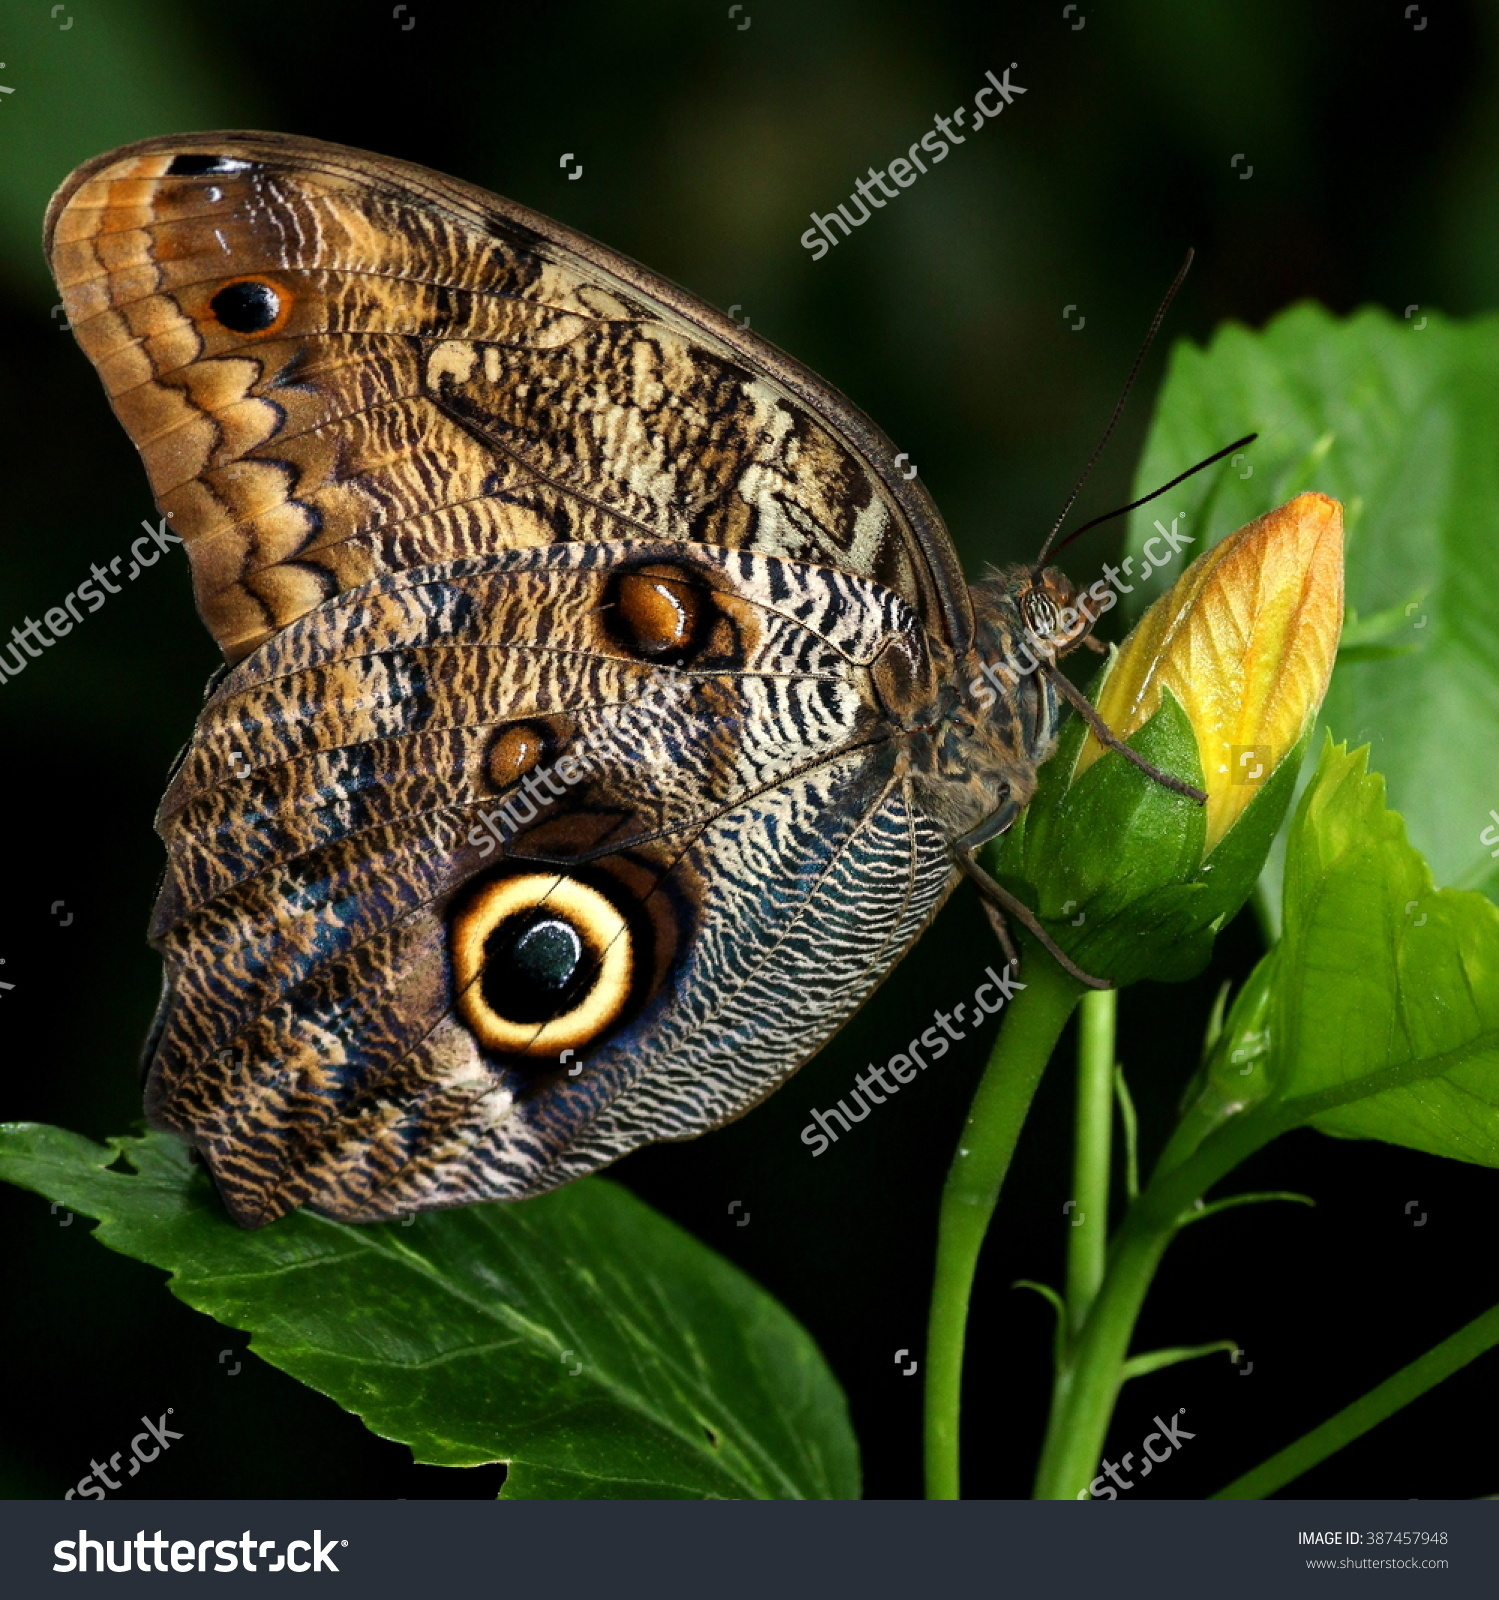 South American Forest Giant Owl Butterfly Stock Photo 387457948.